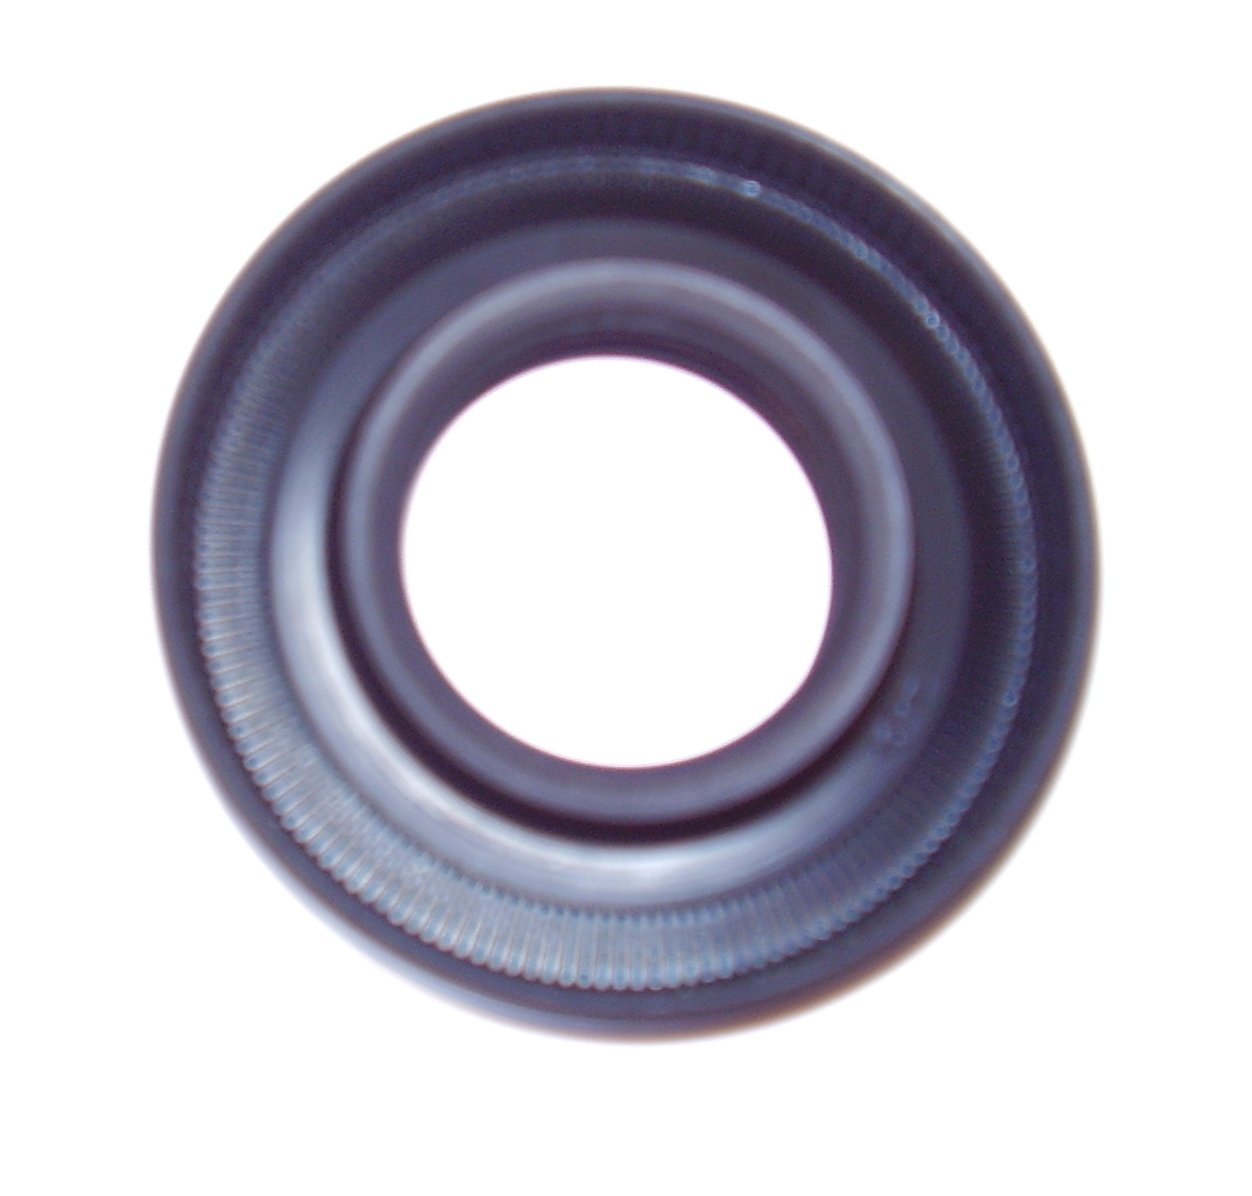 Description of SHAFT SEAL